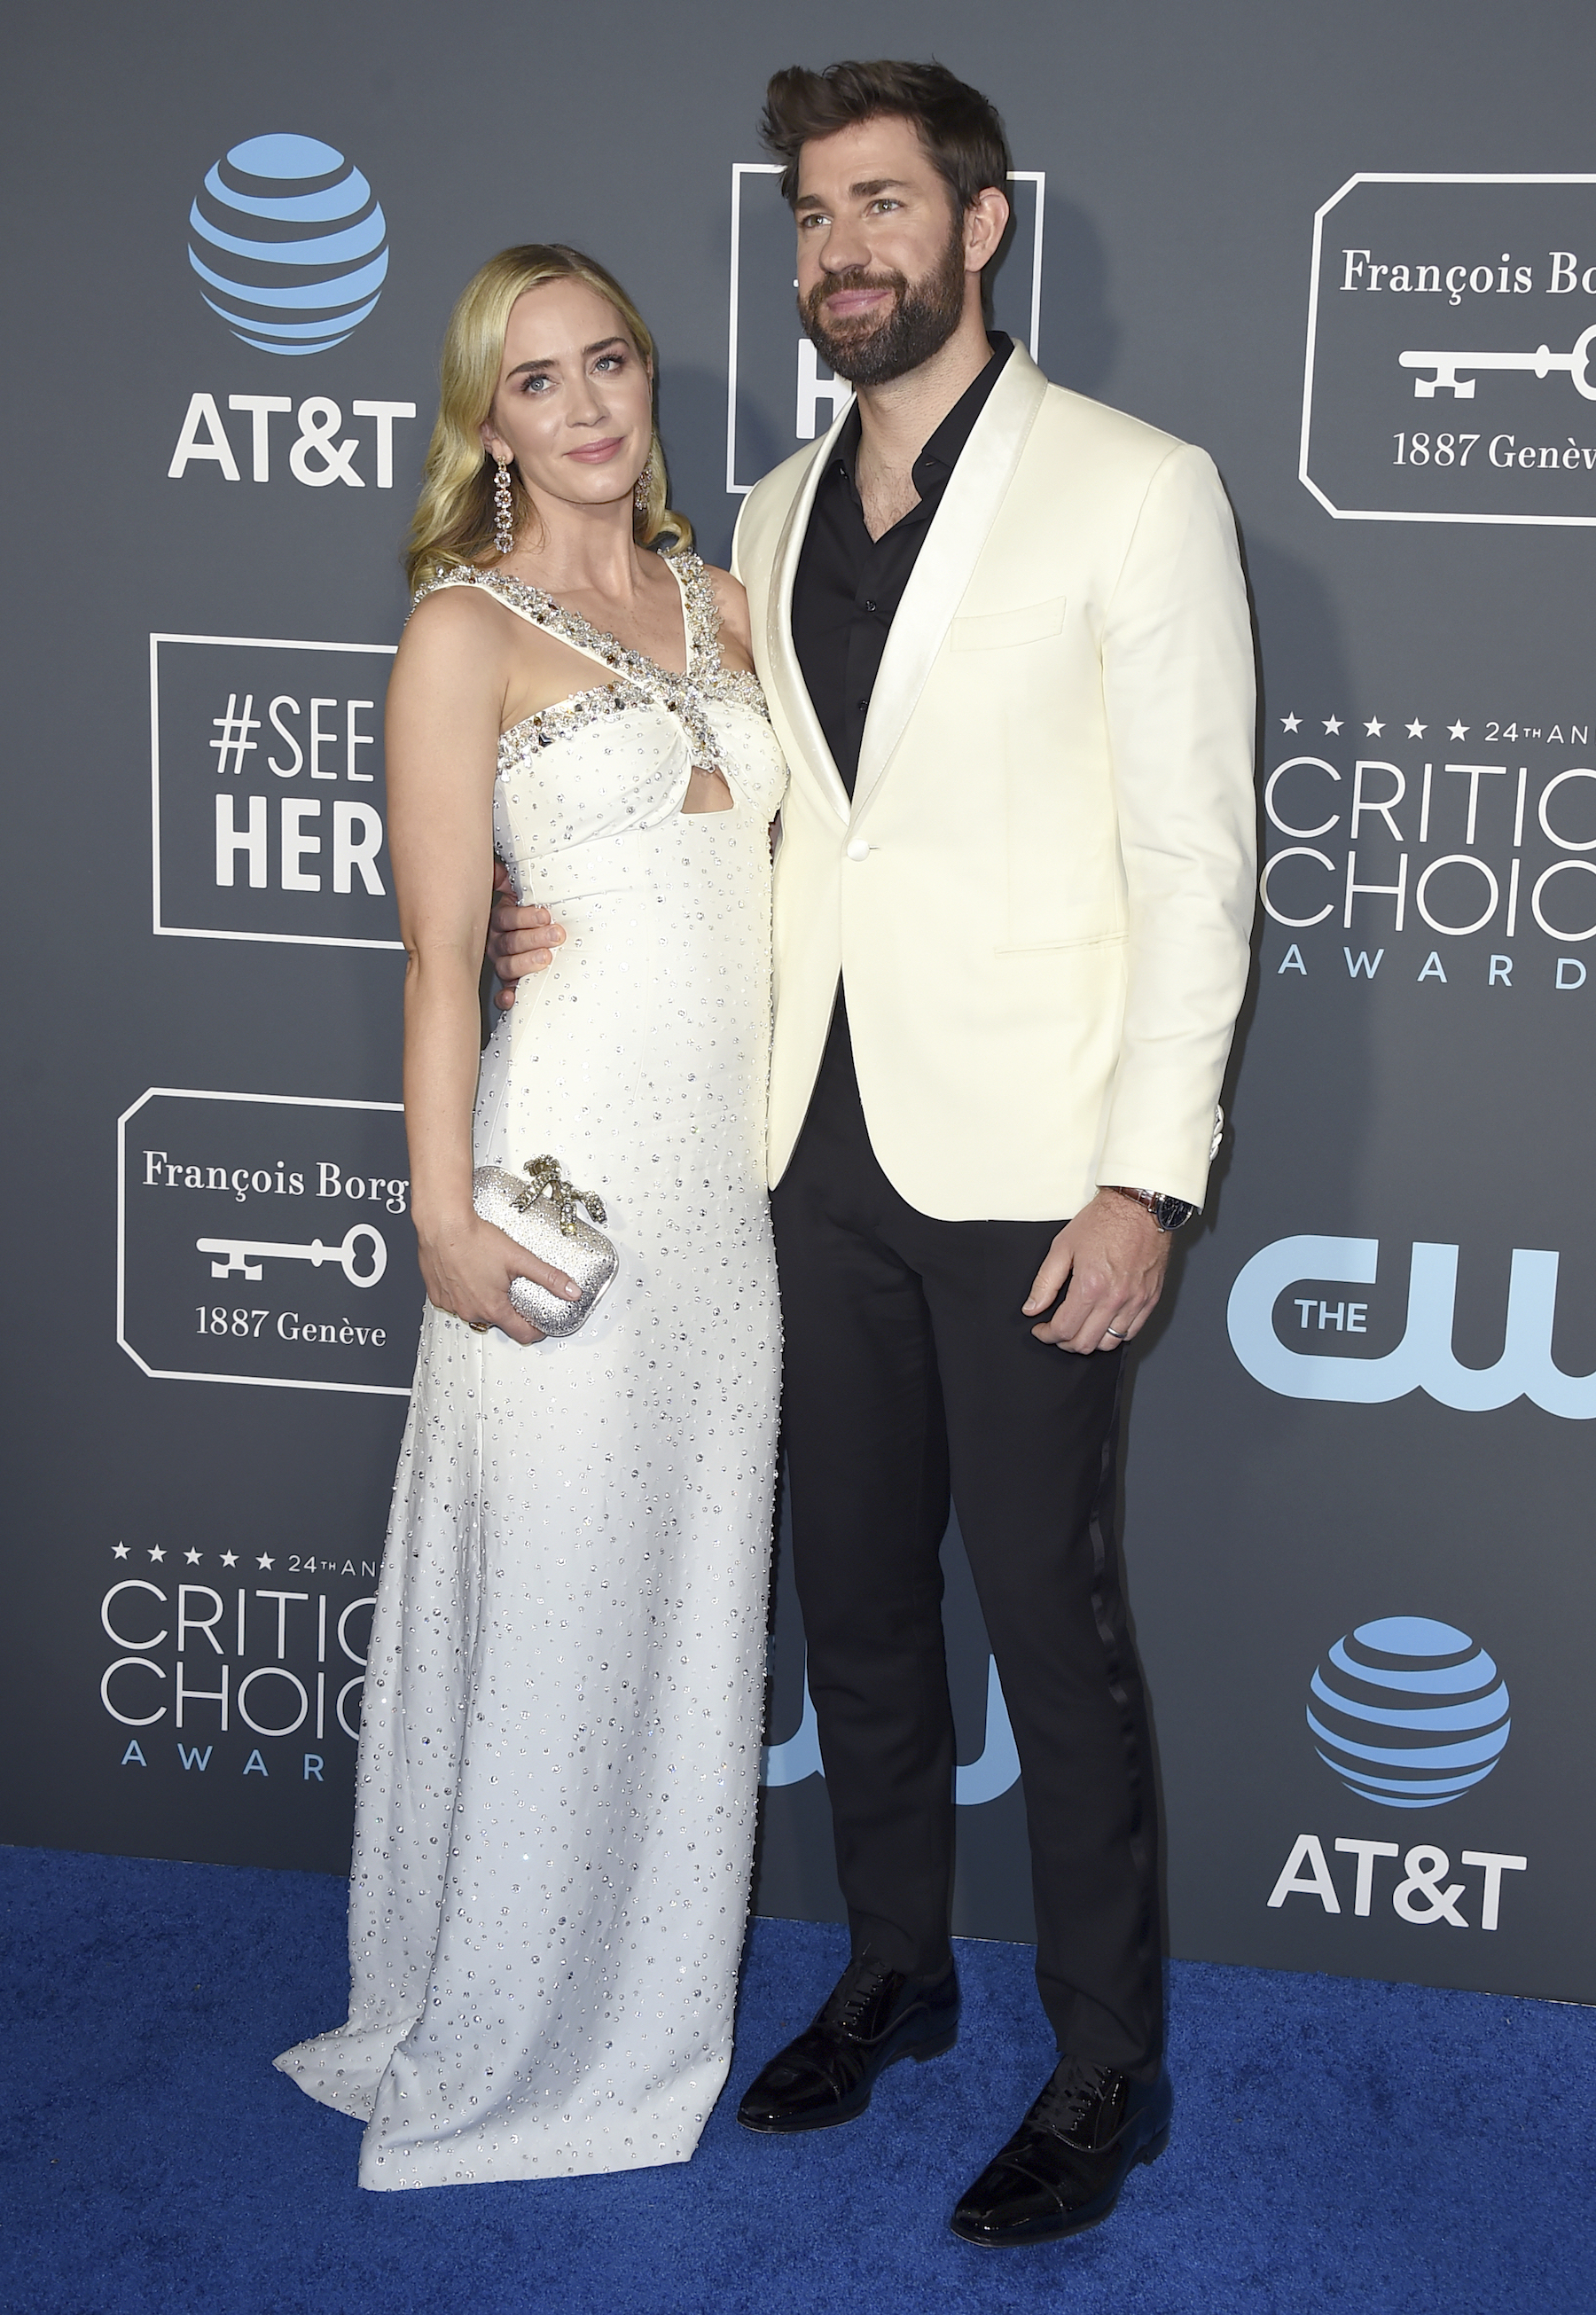 "<div class=""meta image-caption""><div class=""origin-logo origin-image ap""><span>AP</span></div><span class=""caption-text"">Emily Blunt, left, and John Krasinski arrive at the 24th annual Critics' Choice Awards on Sunday, Jan. 13, 2019, at the Barker Hangar in Santa Monica, Calif. (Jordan Strauss/Invision/AP)</span></div>"